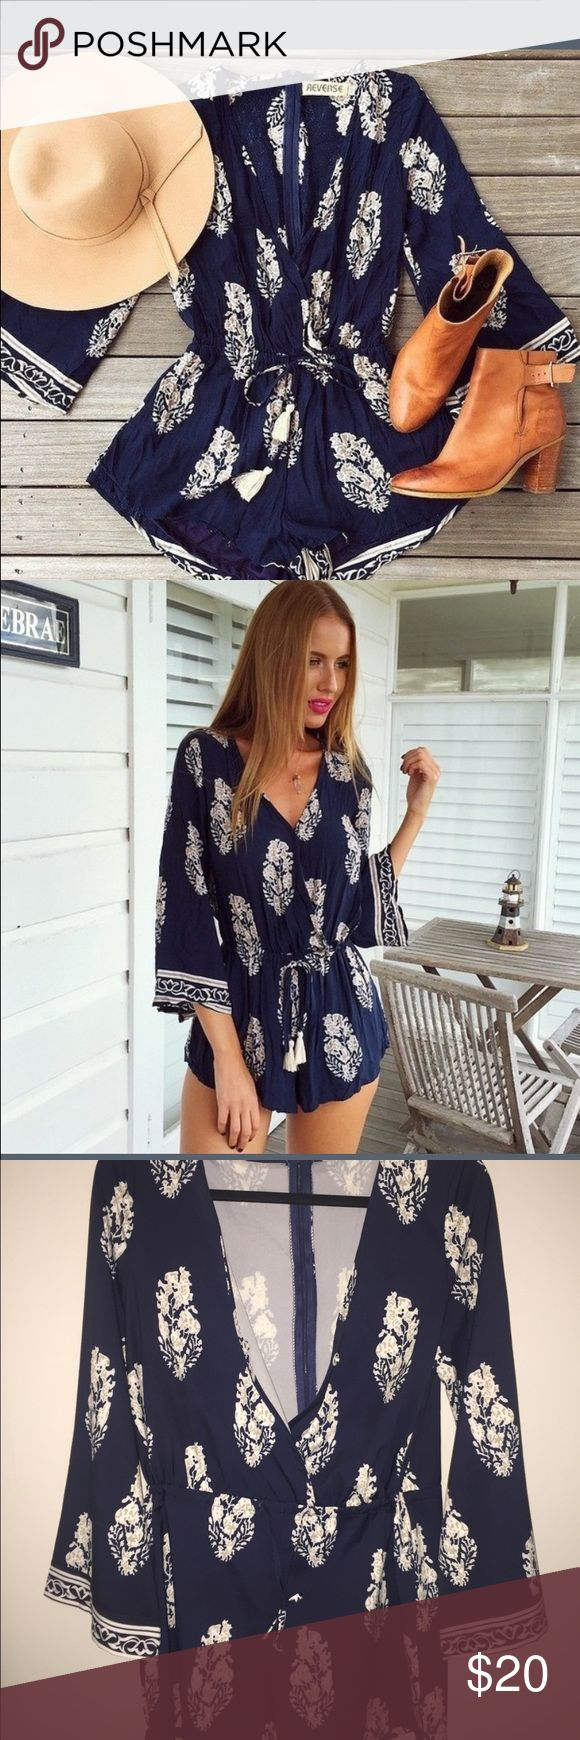 Summer Jumper Hey ladies check out this number! It's cute and fun summer jumper! It deep blue and sheer material. Flowy long sleeve arms and emphasis waist the waist. Other